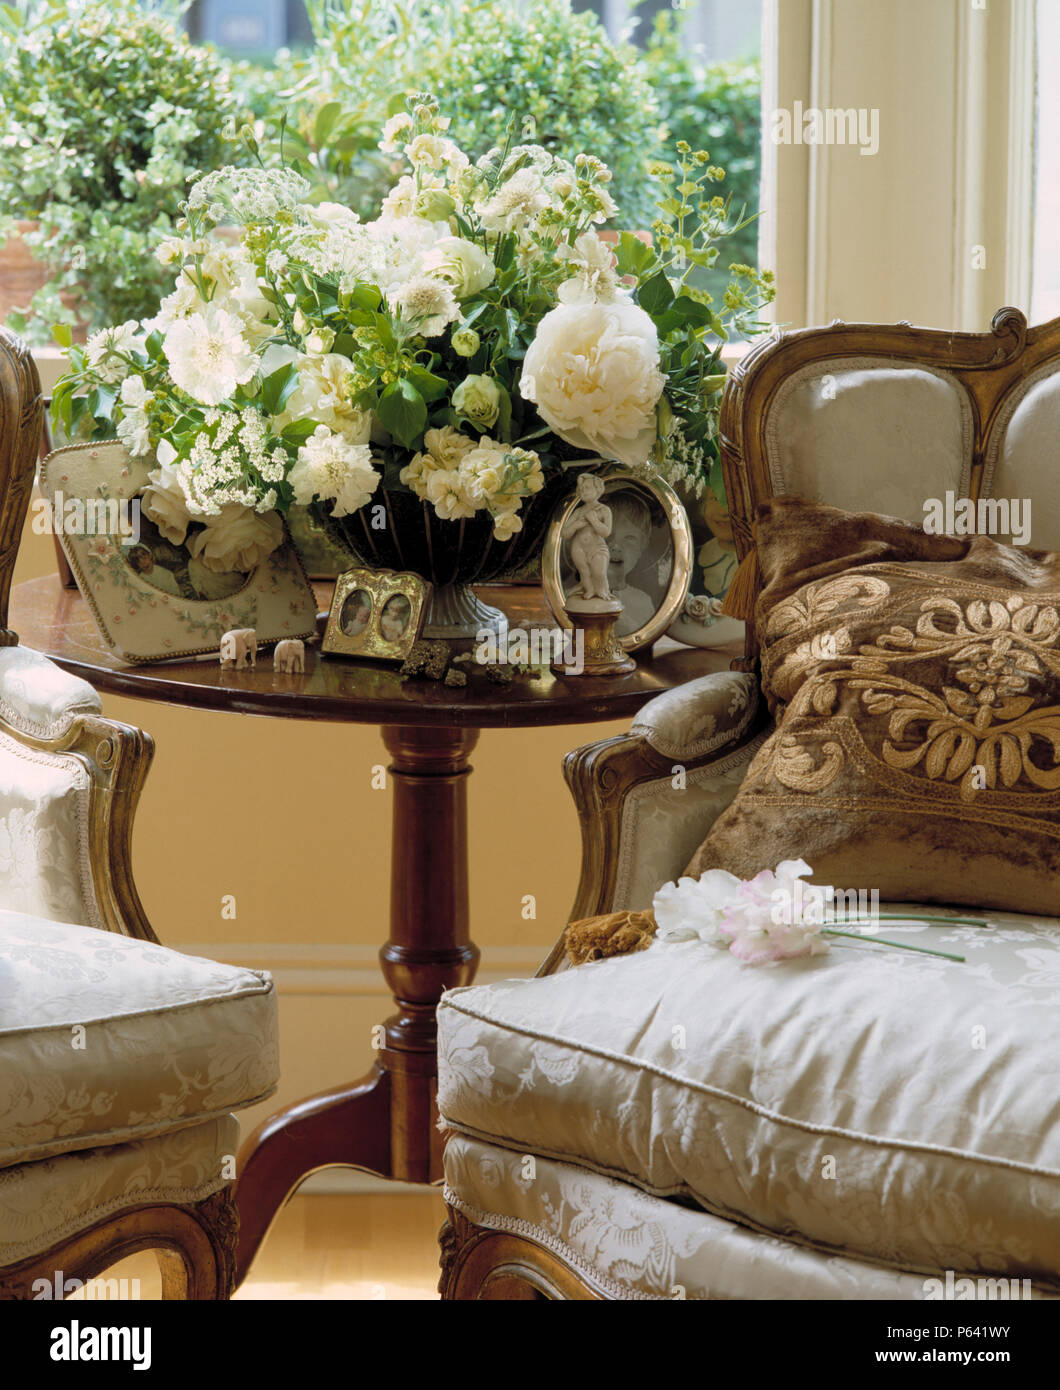 White Roses In Floral Arrangement On Antique Able In Front Of Window In  Traditional Living Room